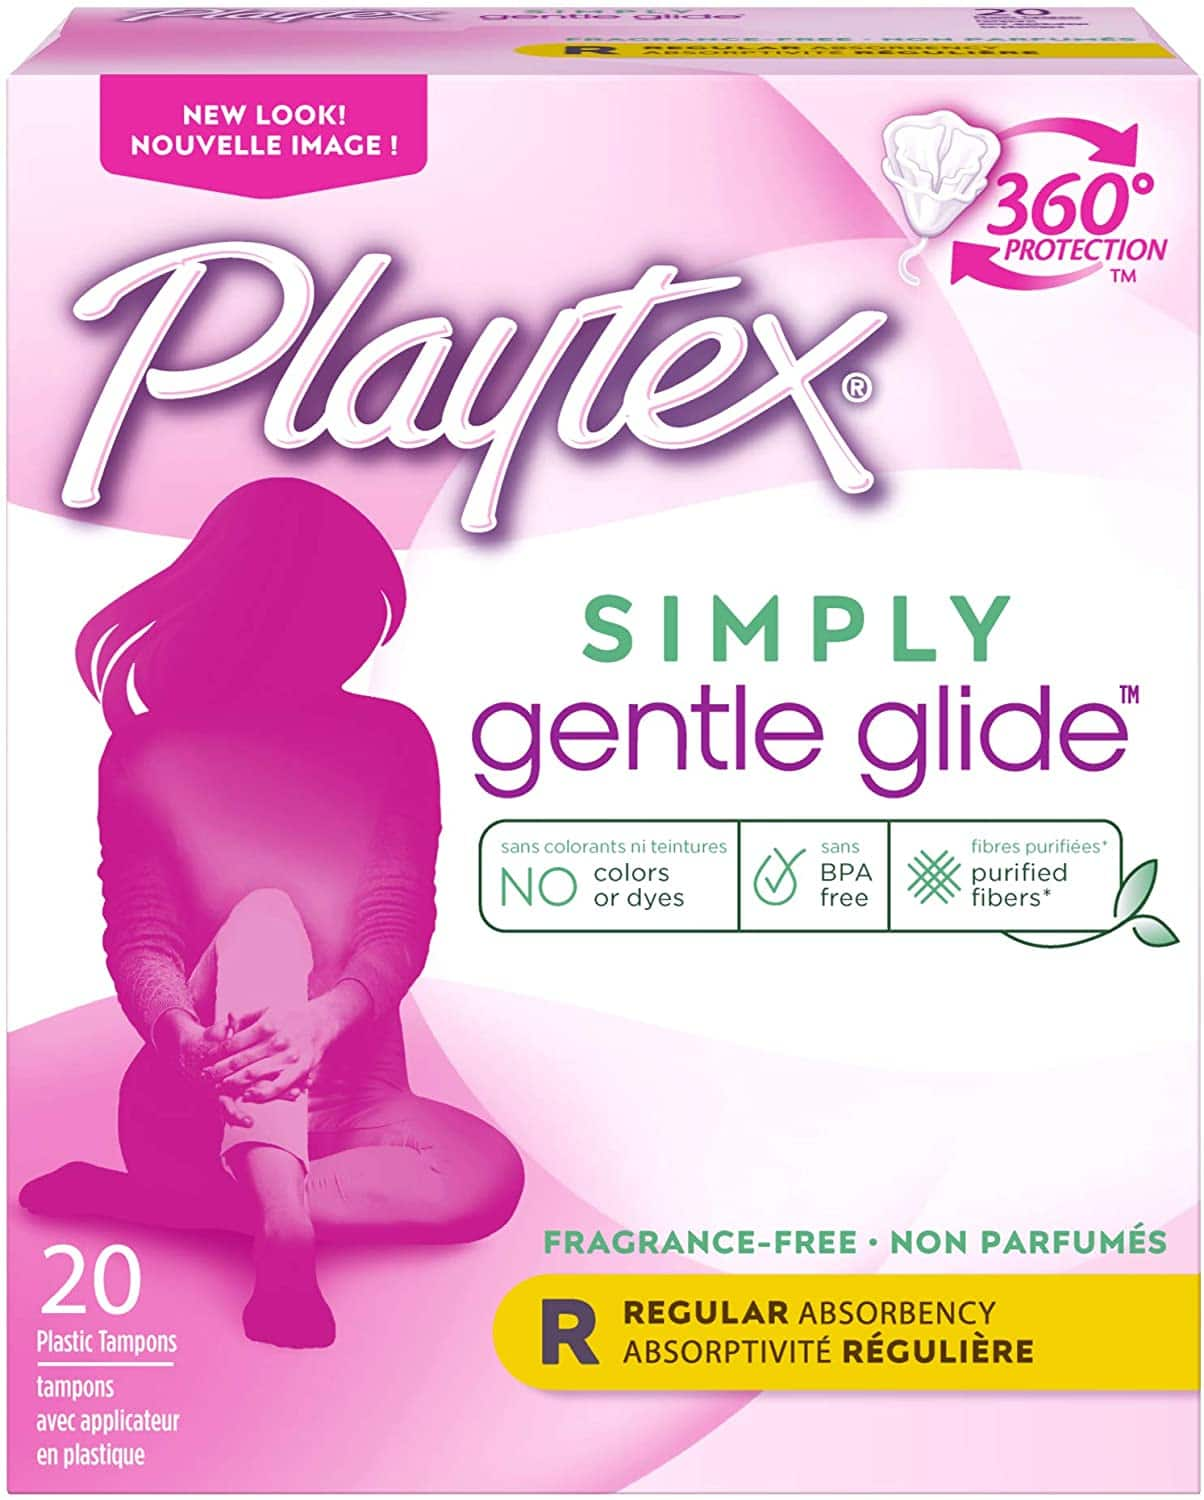 2-Pack 20-Count Playtex Gentle Glide Tampons (Regular, Unscented) $3.80 w/ Subscribe & Save